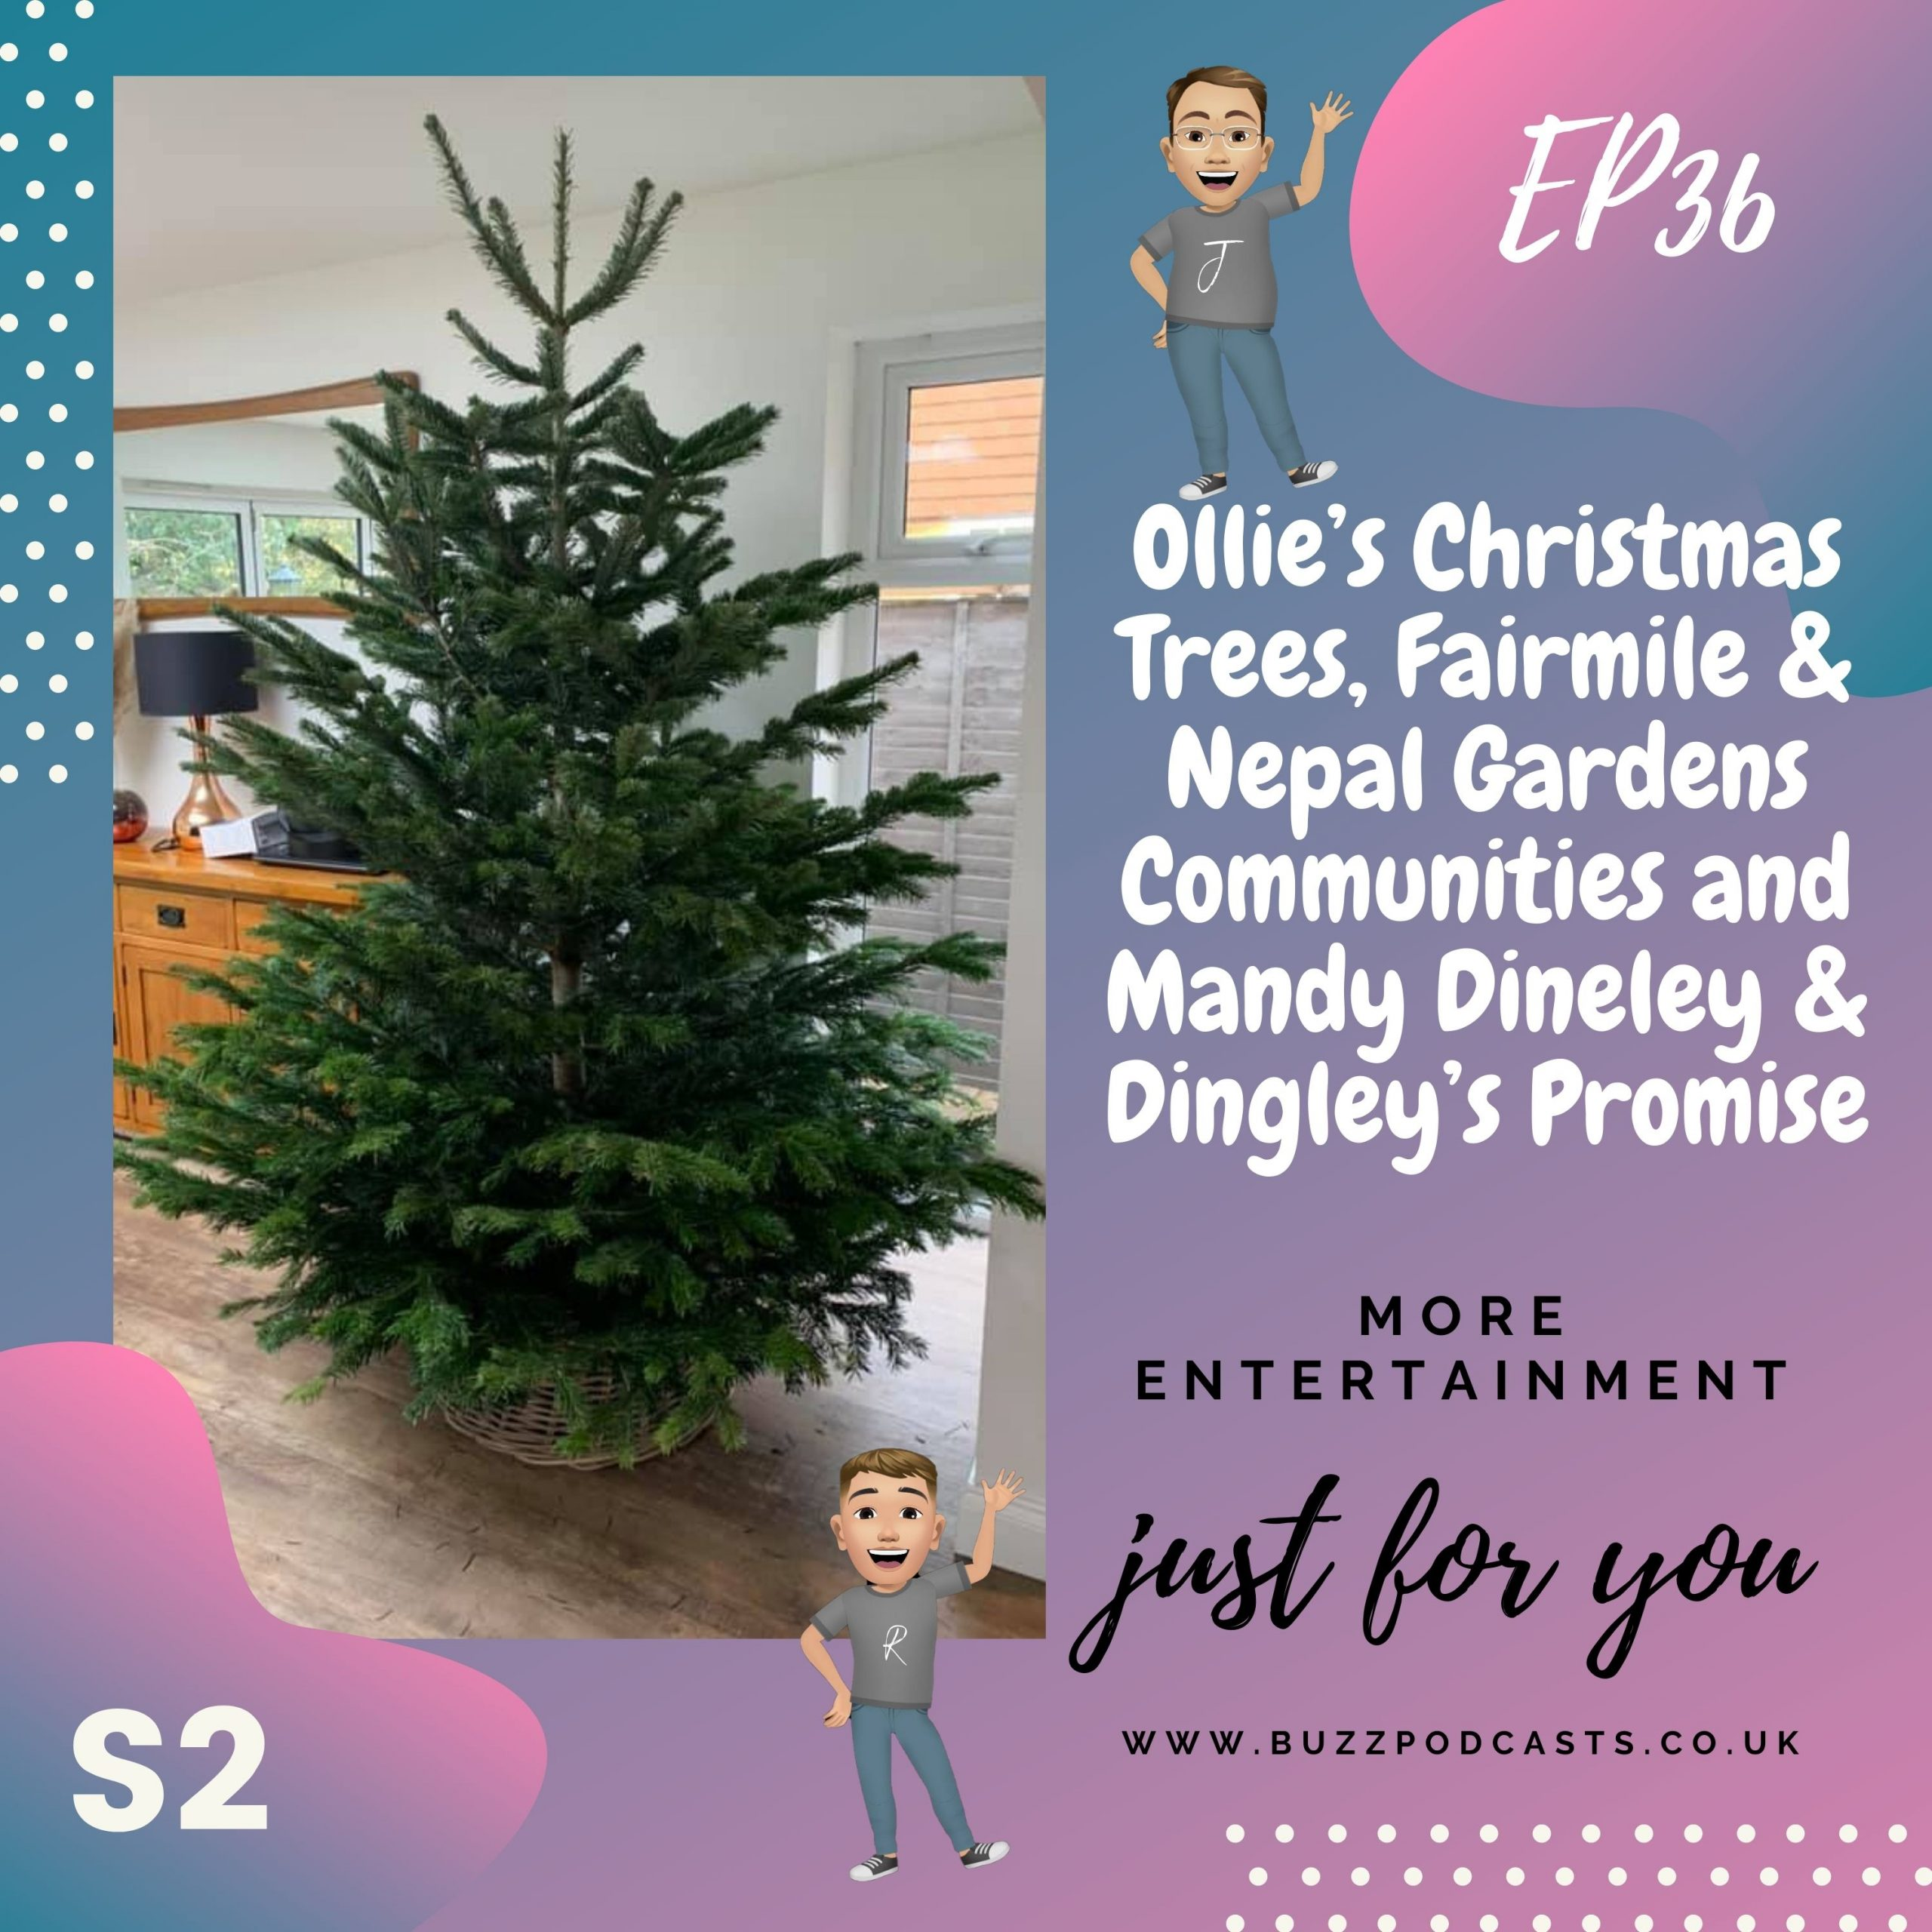 Ollie's Christmas Trees, Fairmile & Nepal Gardens Communities and Mandy Dineley & Dingley's Promise